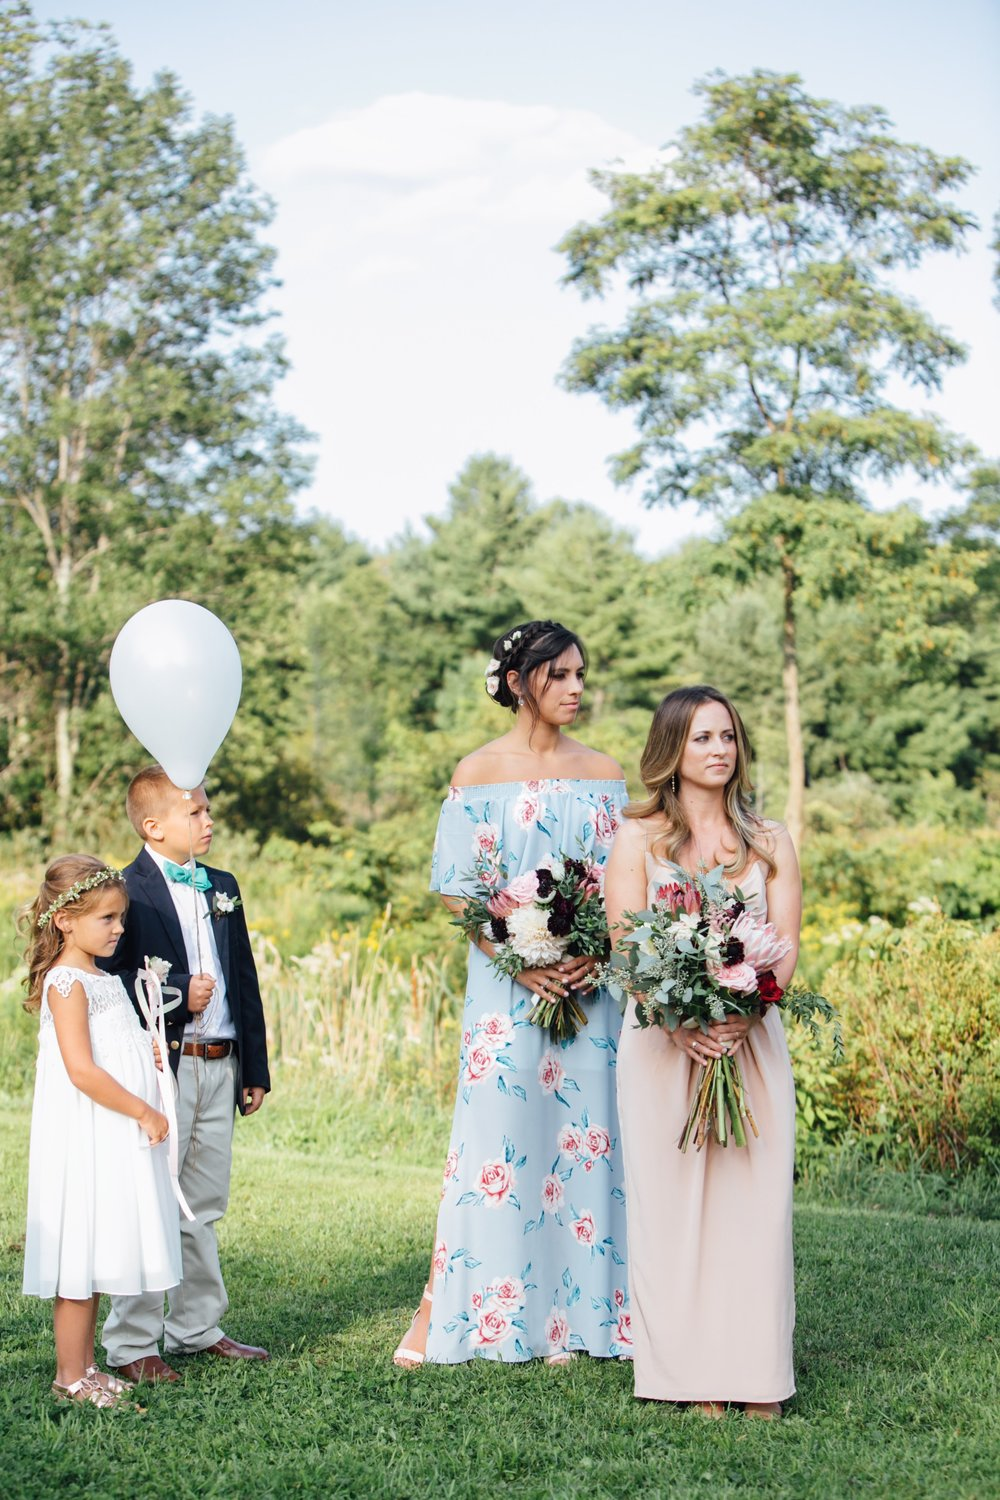 Courtney + Matt Blenheim Hill Farm Catskills NY Wedding Veronica Lola Photography 2017-389.jpg